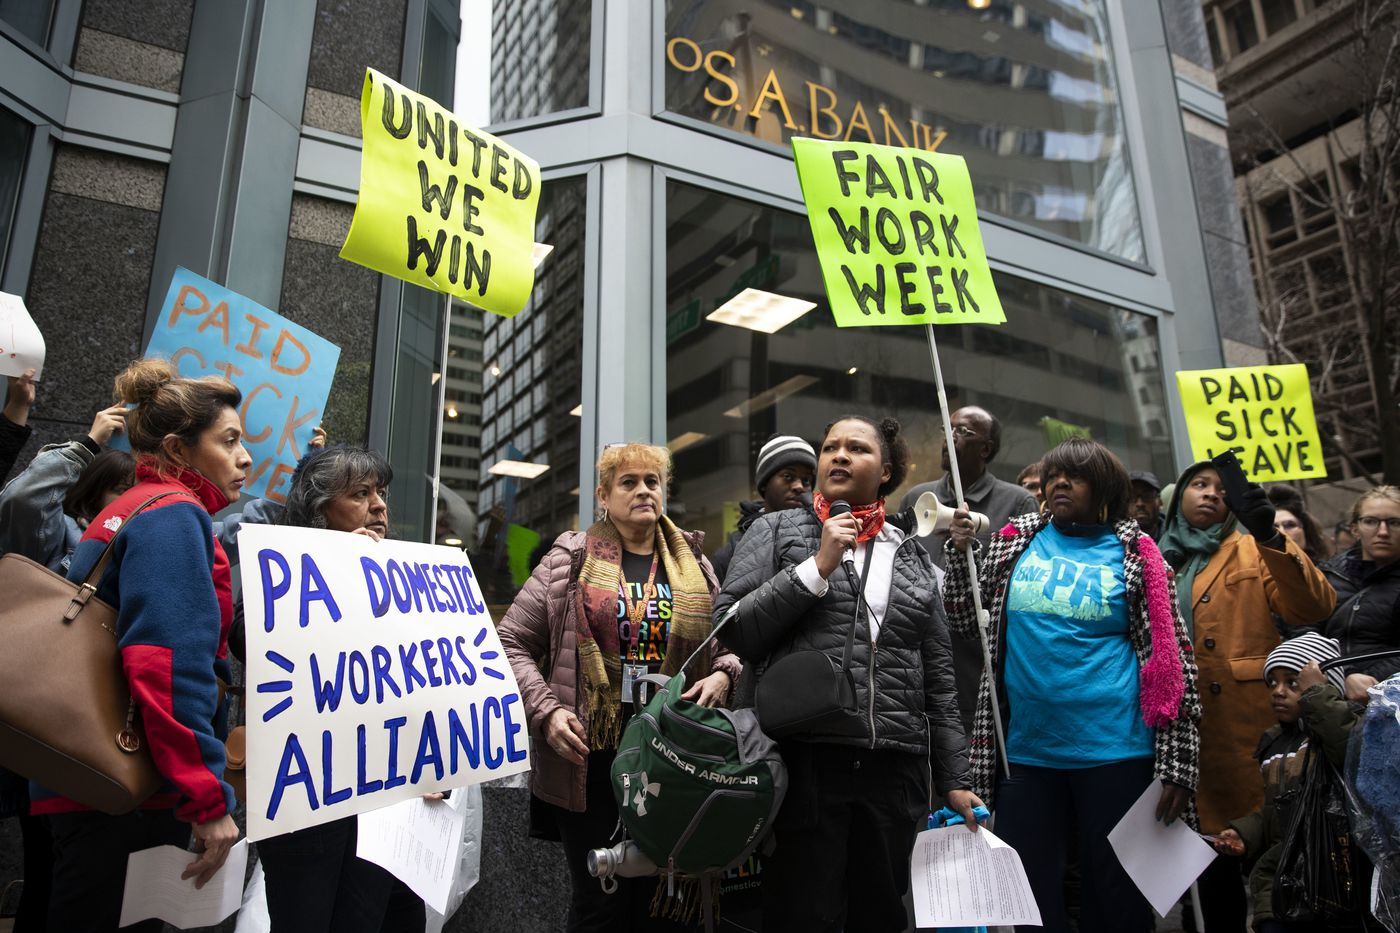 People march down Market Street towards Philadelphia City Hall for a press conference in Philadelphia, Pa. on Wednesday, February 12, 2020. The Coalition to Respect Every Worker (CREW) marched in support of stronger labor enforcement in city government.